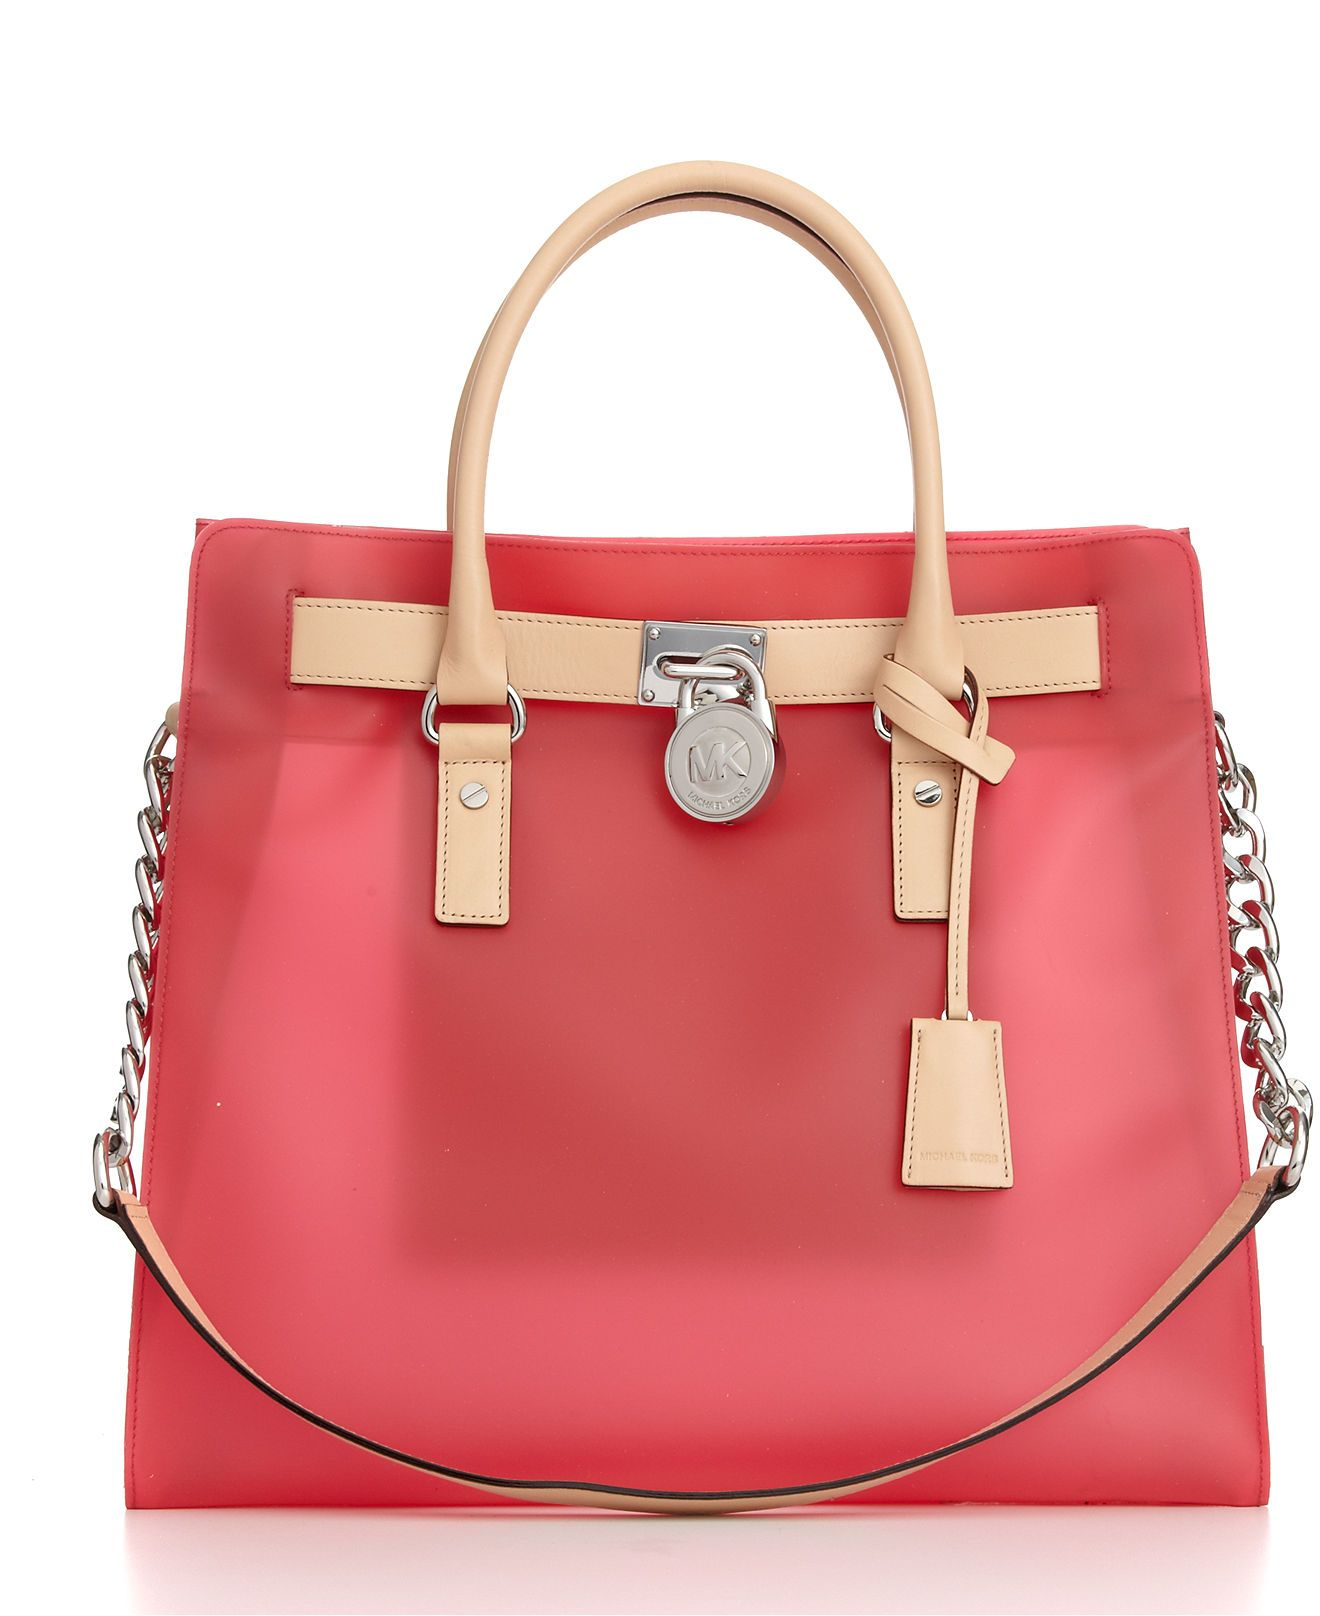 bff66b7b9956 New spring bag  From Michael Kors. I have the black leather version and  it s great!